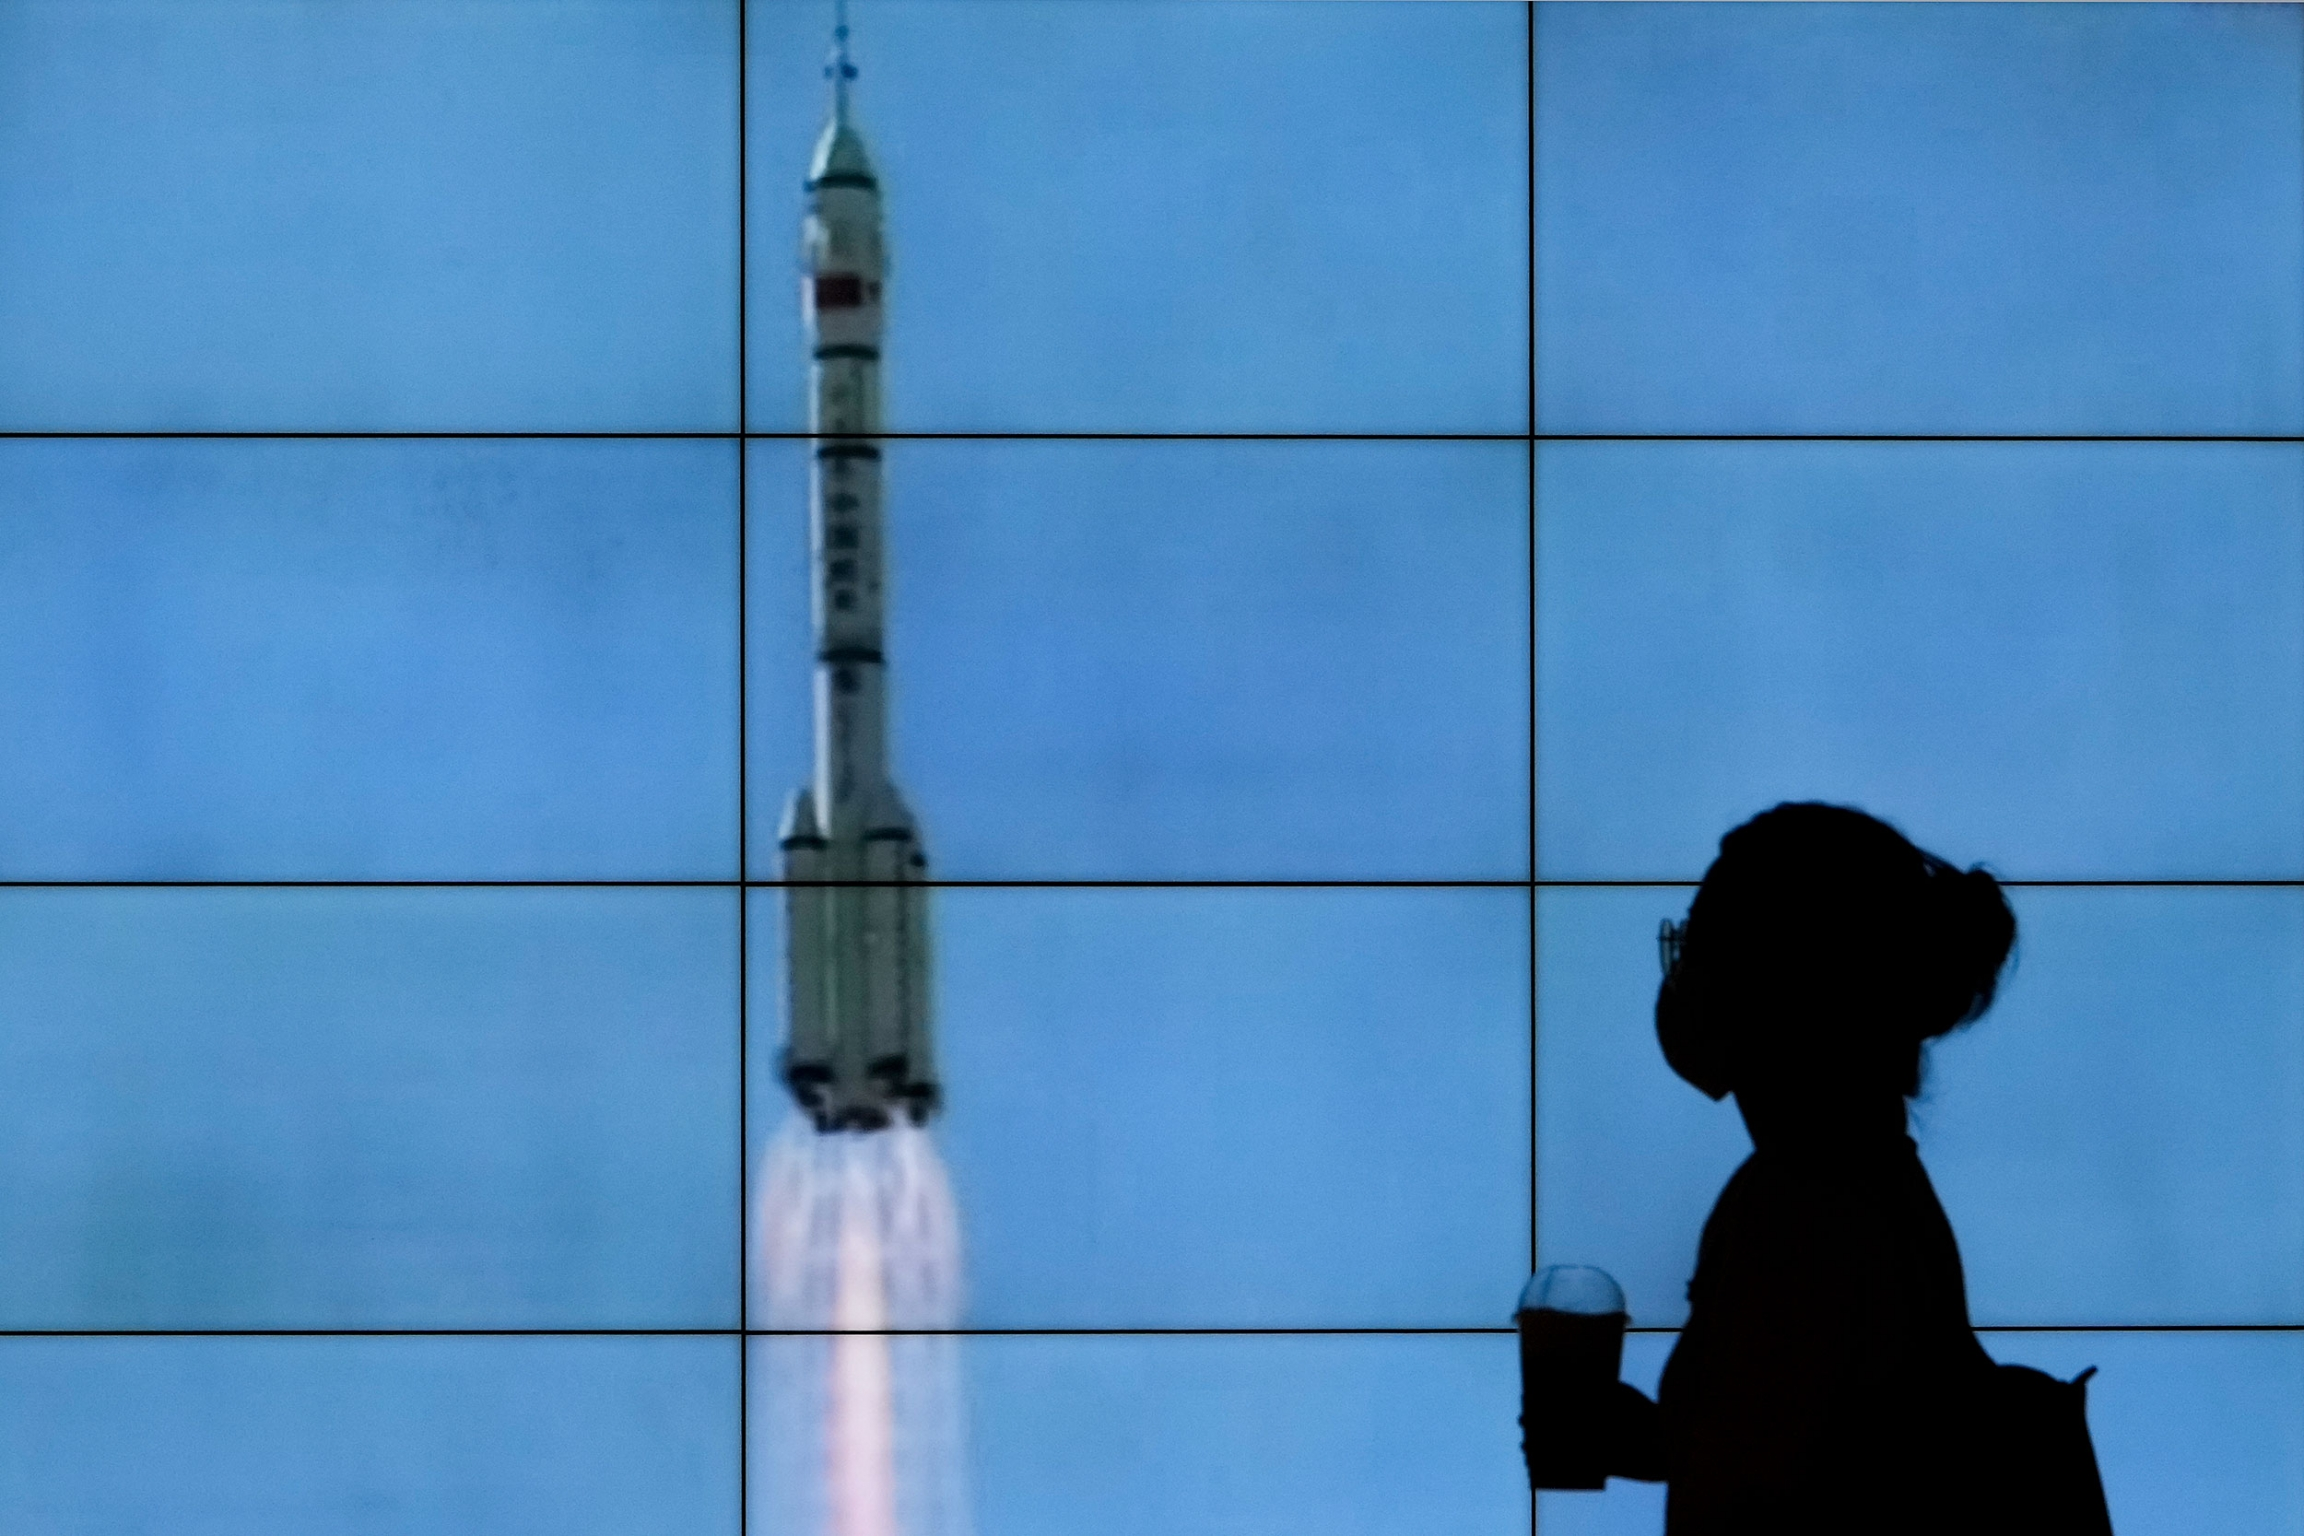 A woman is shown in shadow standing in front of a screen showing the Chinese spacehip lifting off.